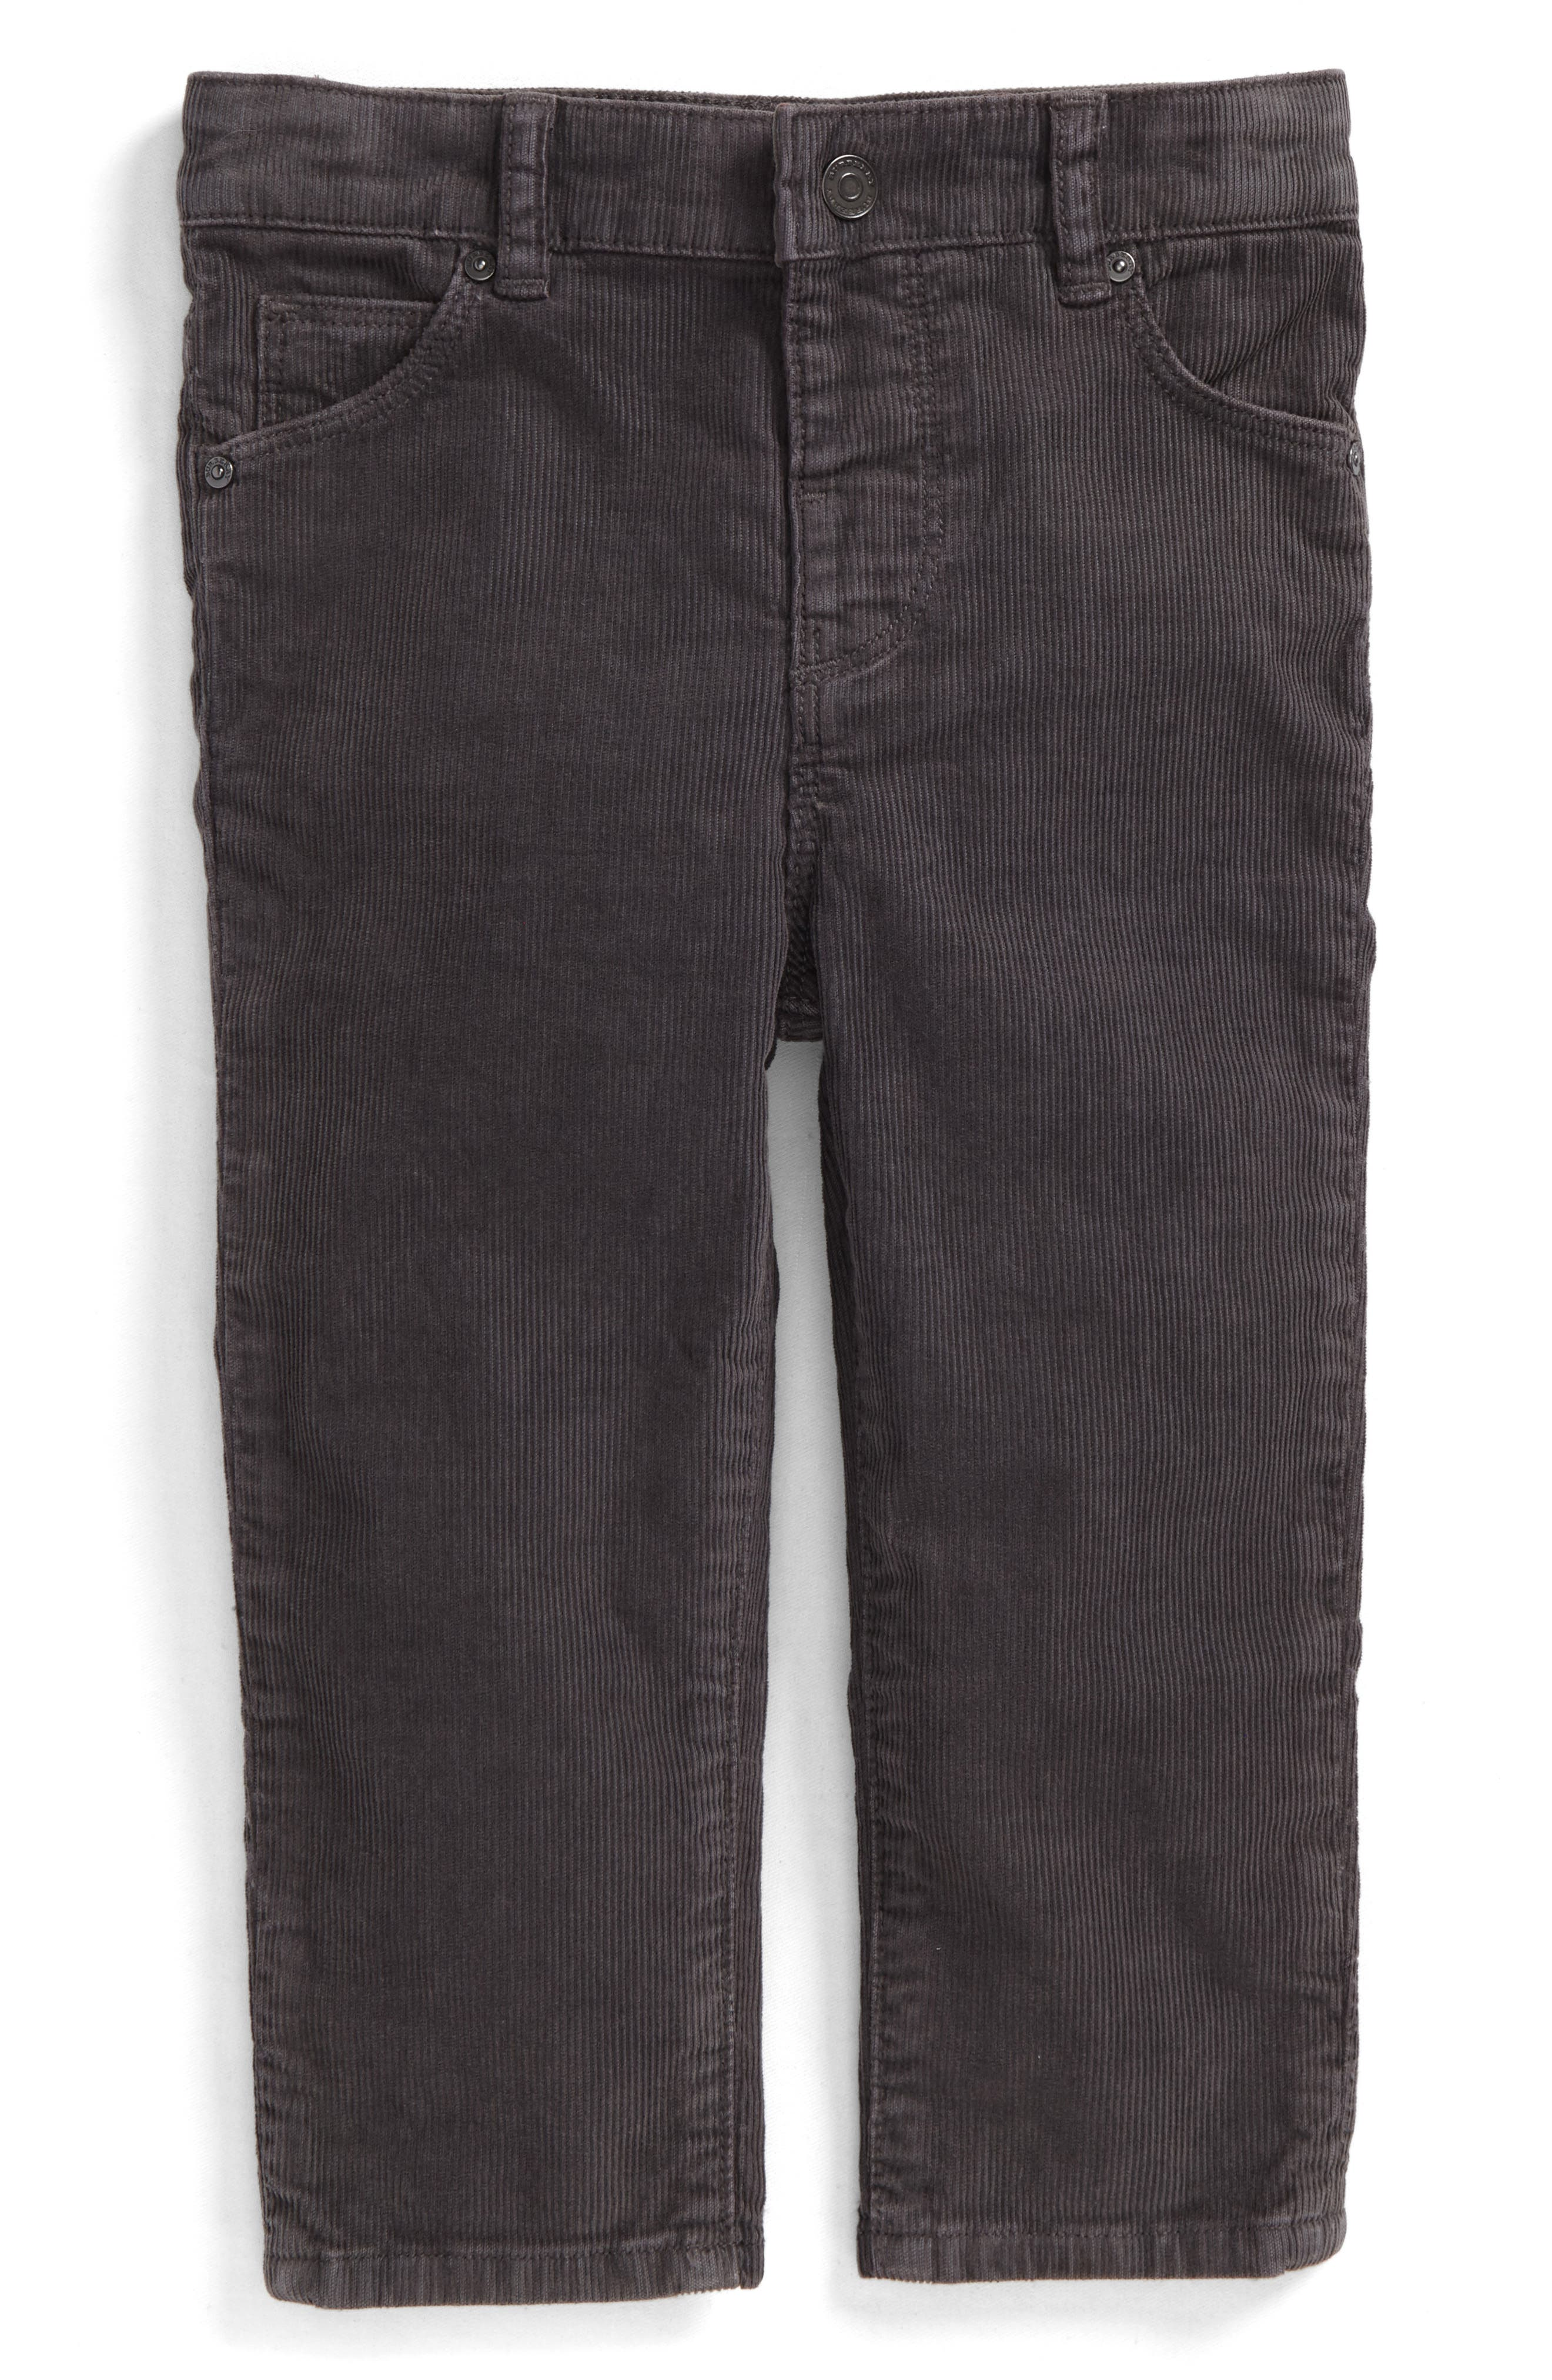 Burberry Langston Corduroy Skinny Pants (Baby Boys)